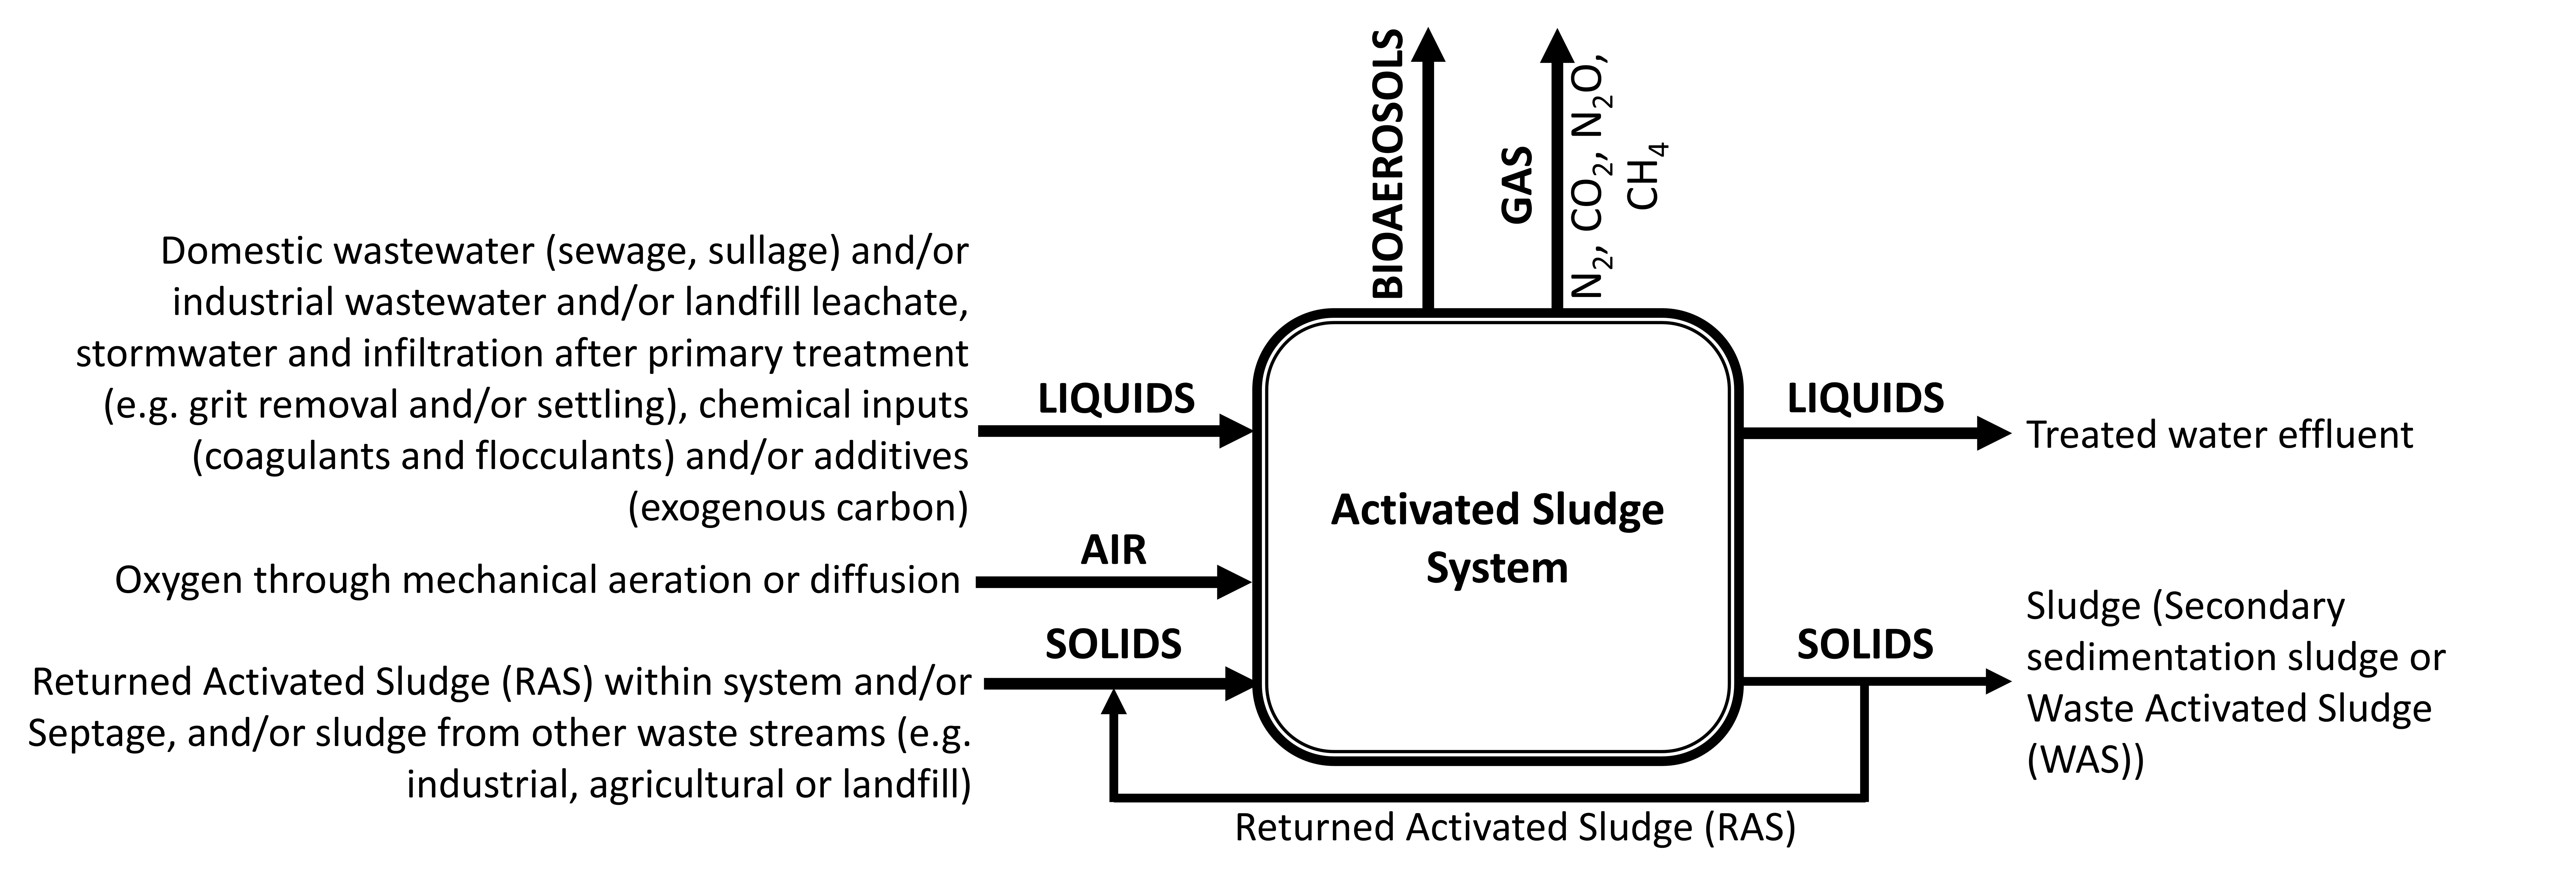 Activated Sludge | Global Water Pathogen Project